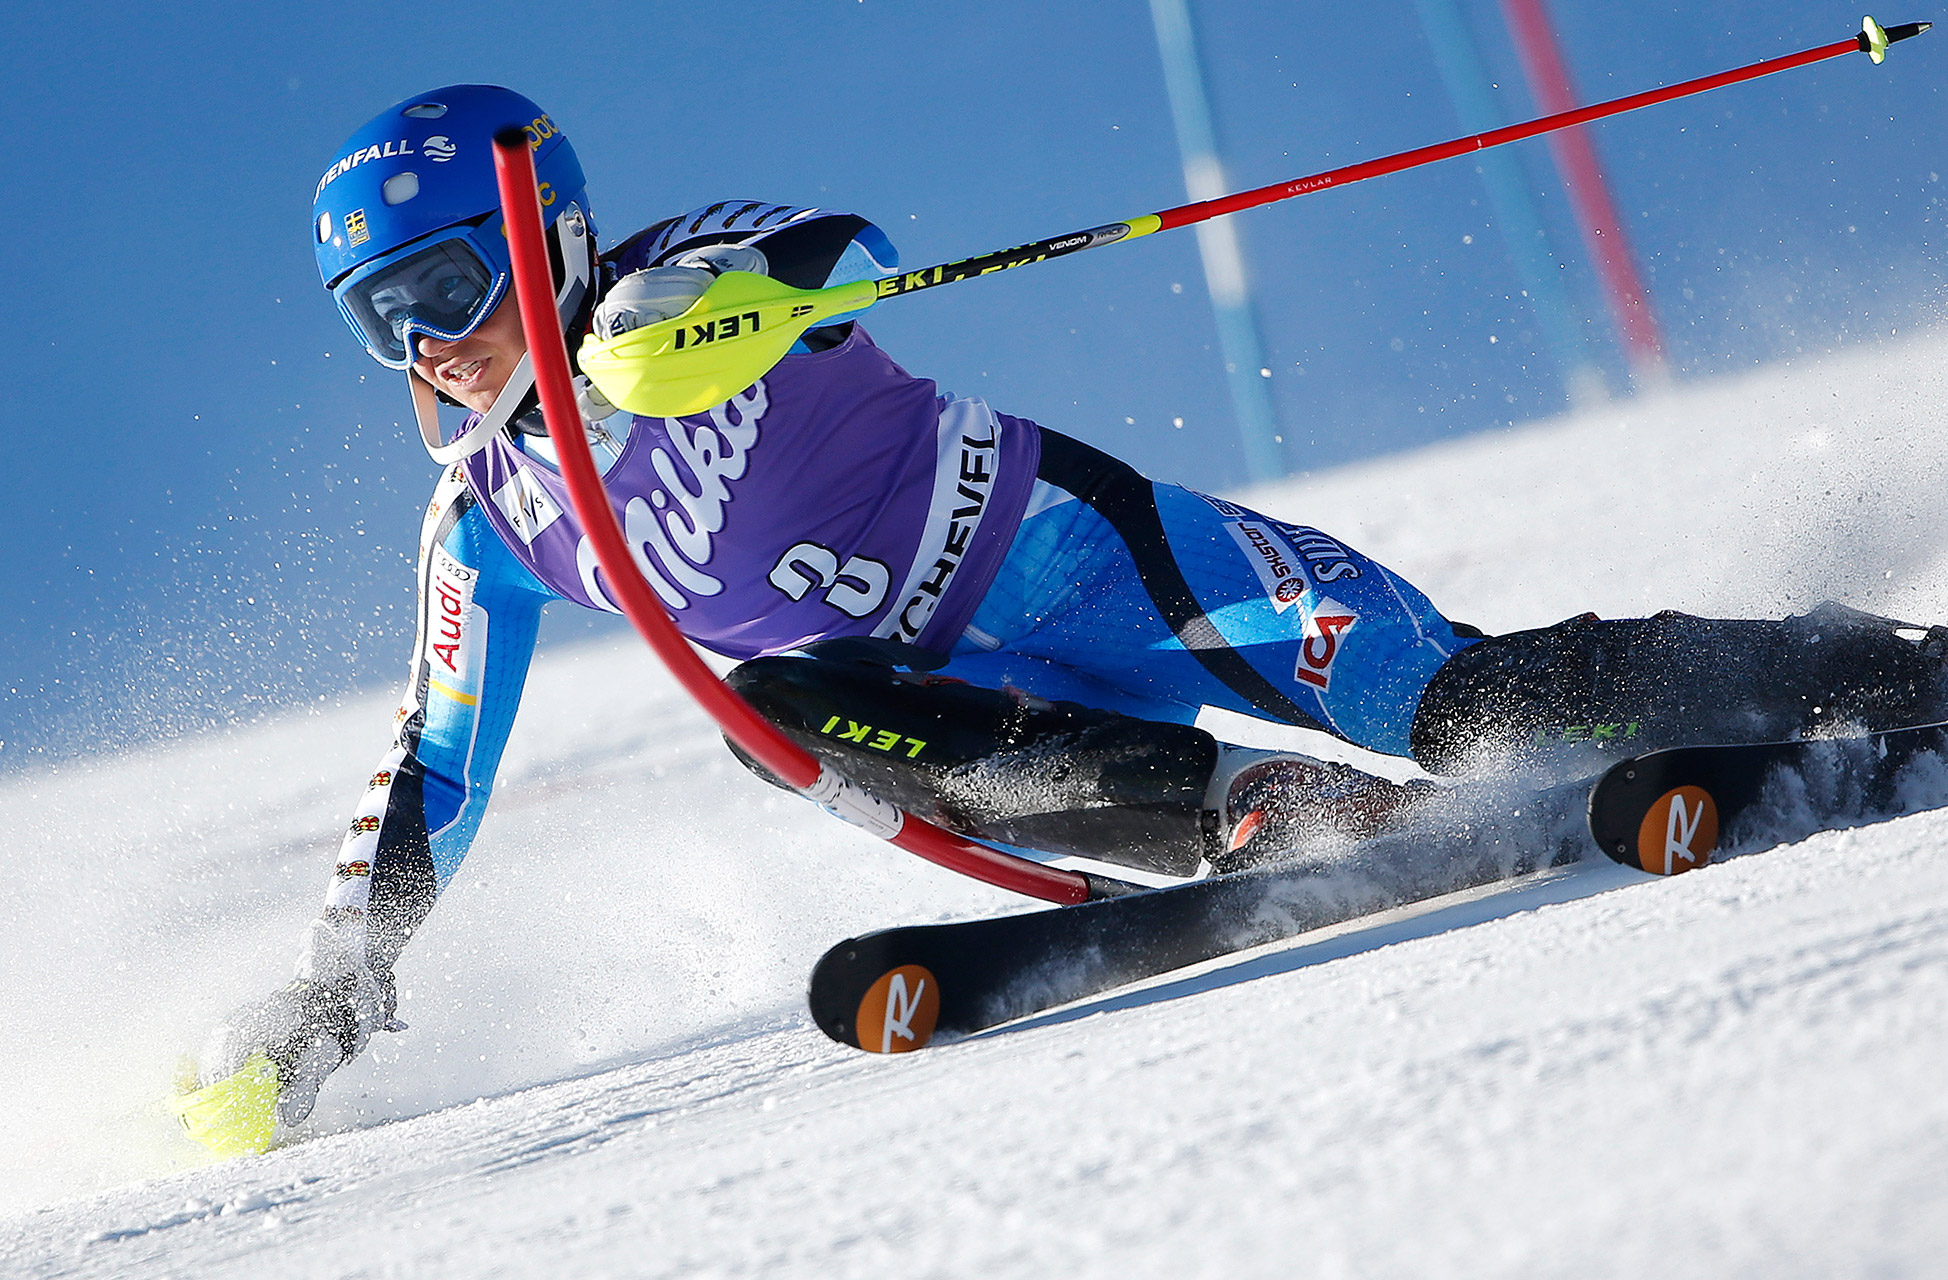 Sweden's Frida Hansdotter skis during the first run of the Women's World Cup Slalom skiing race in Courchevel, French Alps, December 17, 2013.